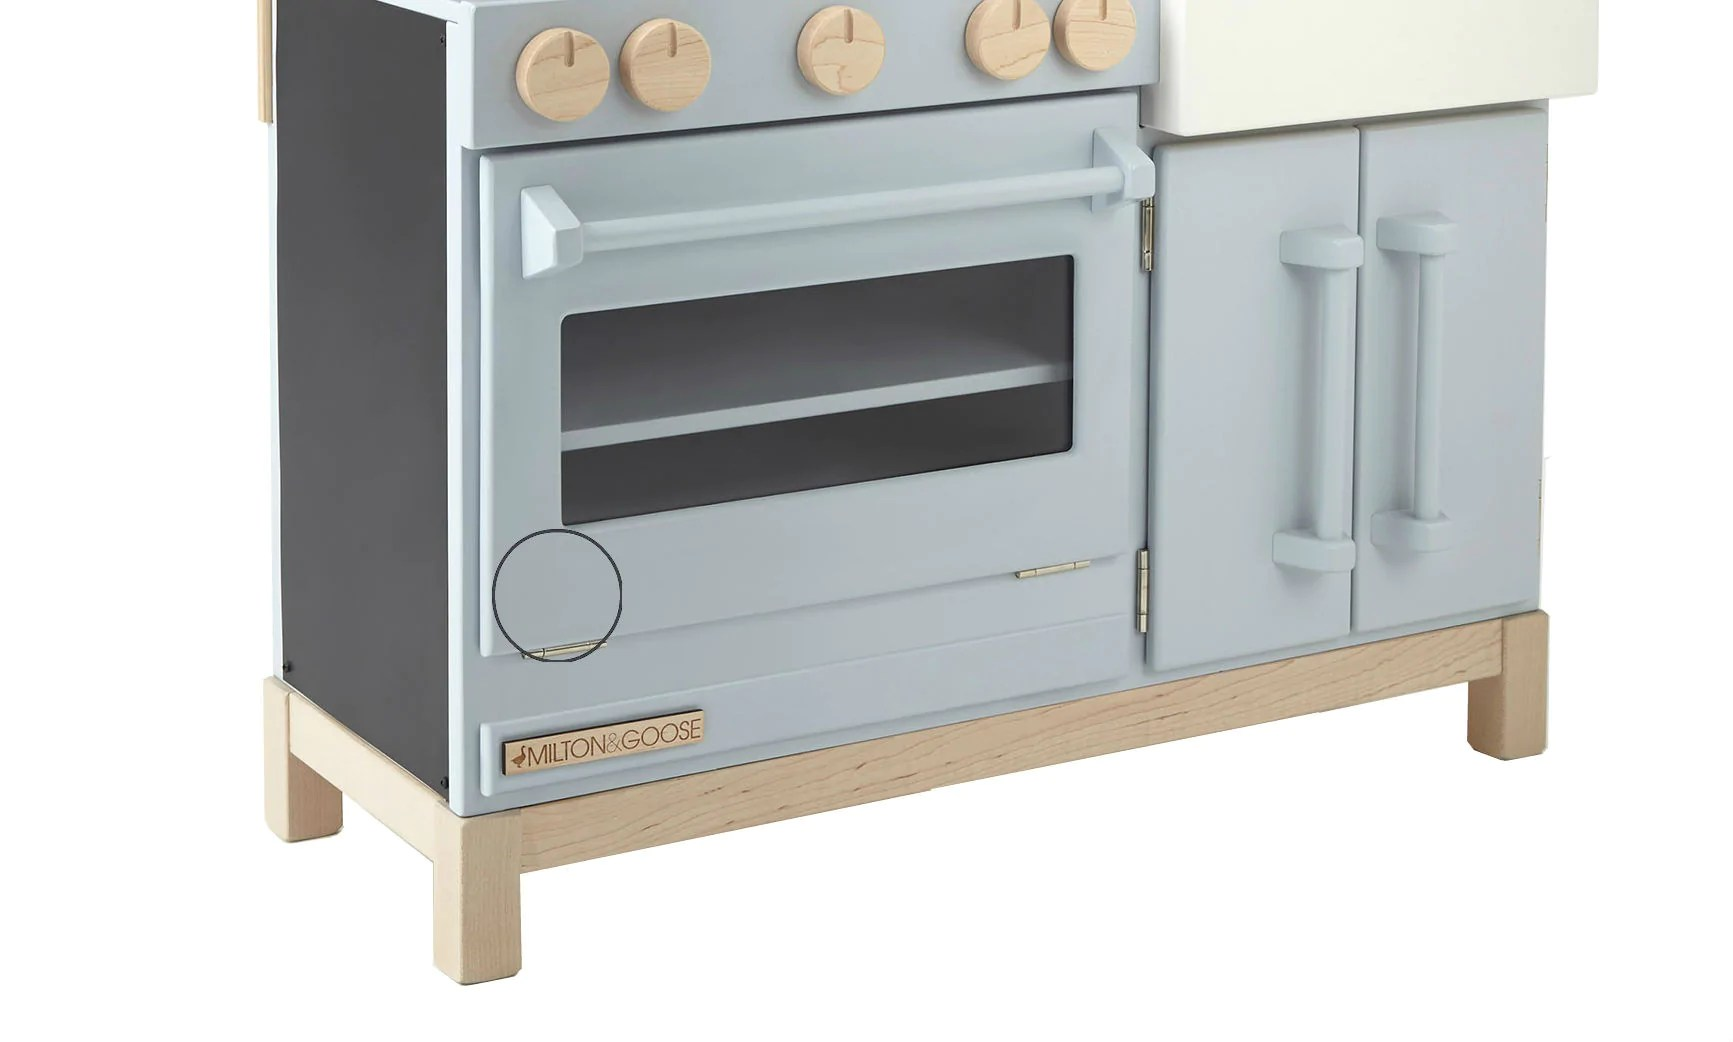 Sideboard Küche Pinterest Milton And Goose Play Kitchens Milton Goose